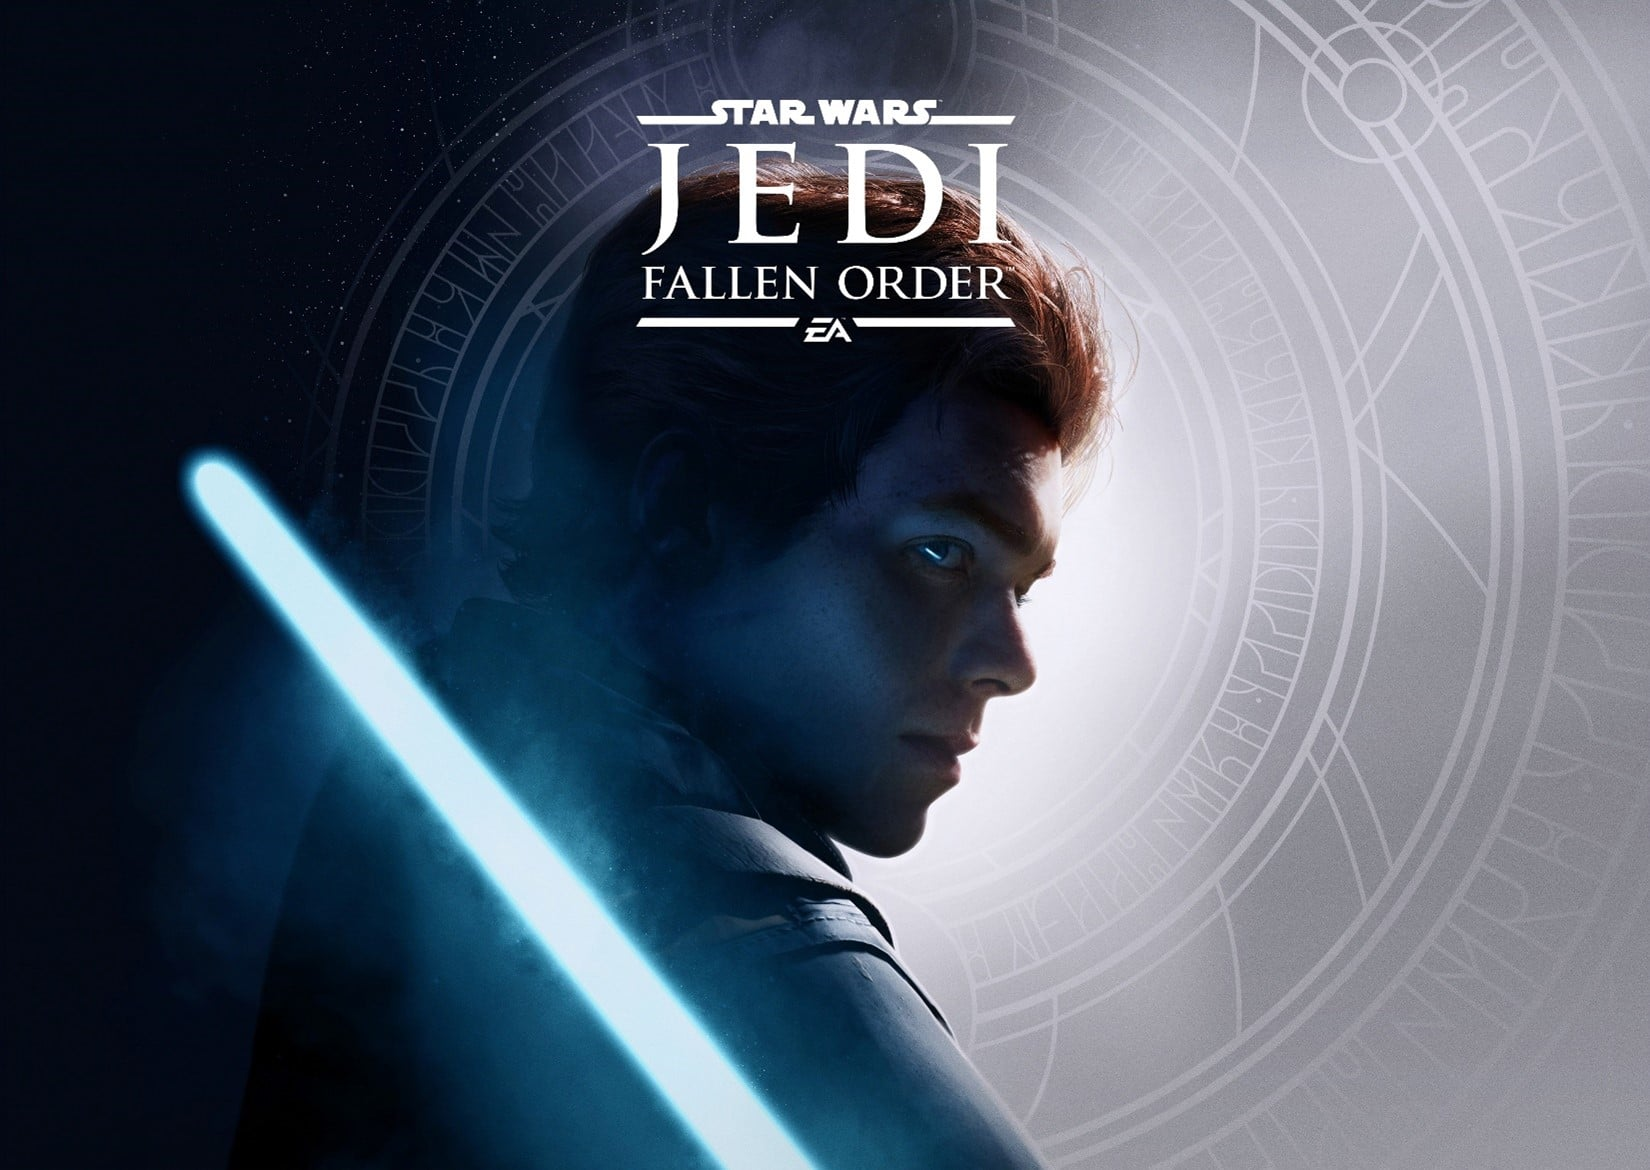 Star Wars Jedi: Fallen Order Is Joining Xbox Game Pass